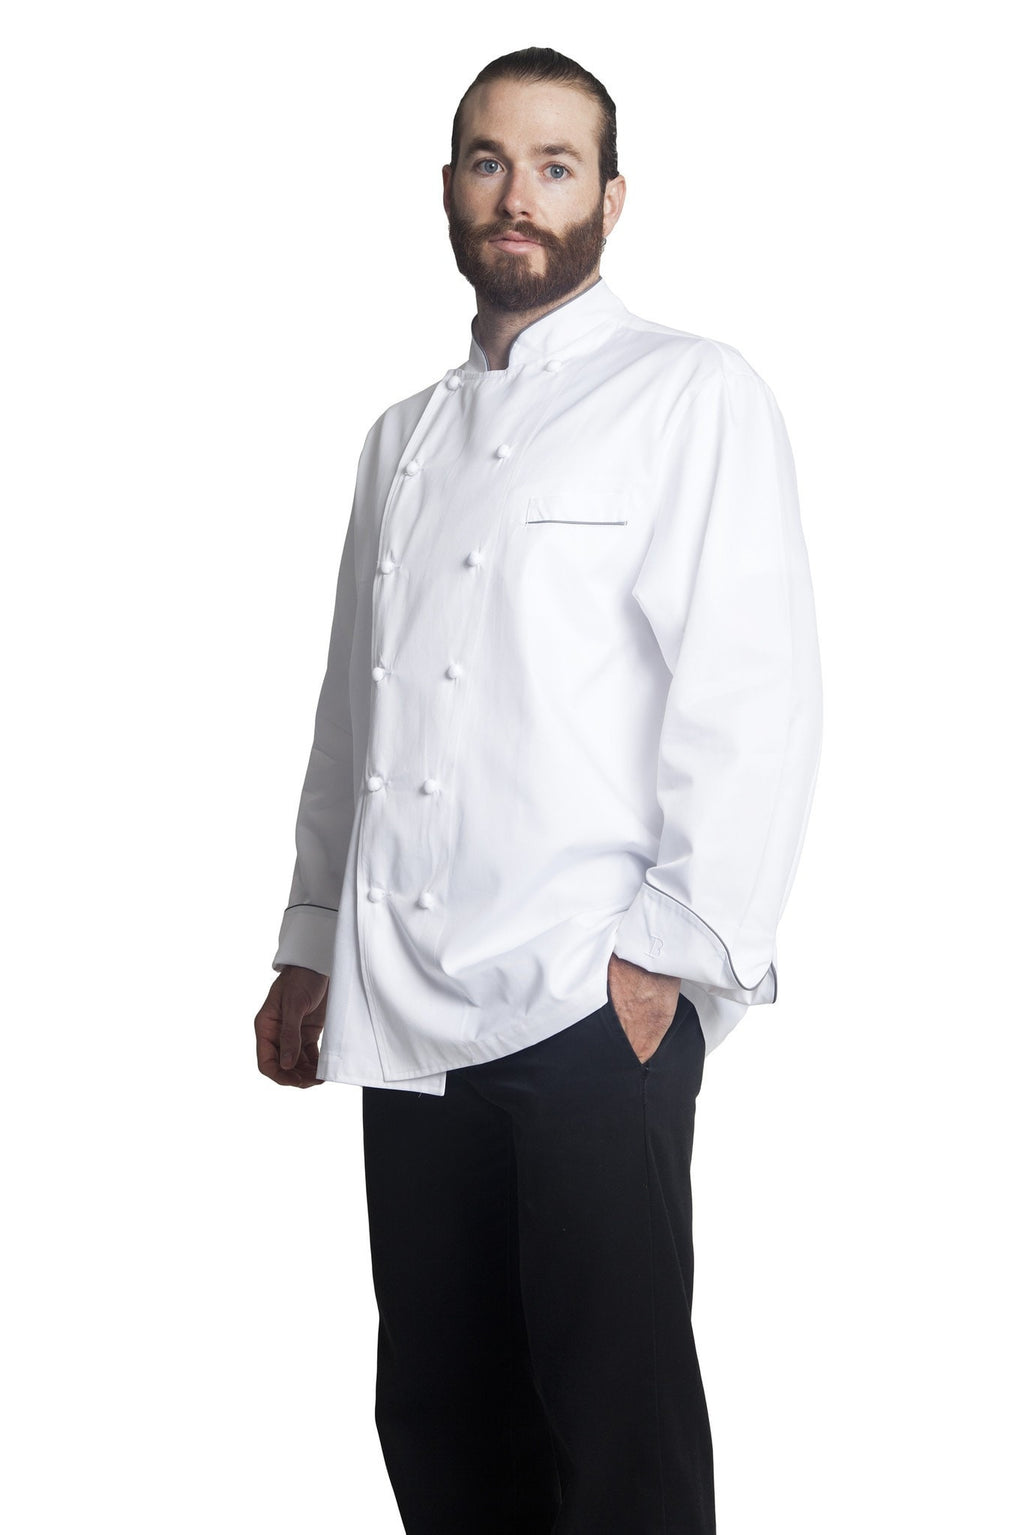 Bragard Périgord Chef Jacket Side